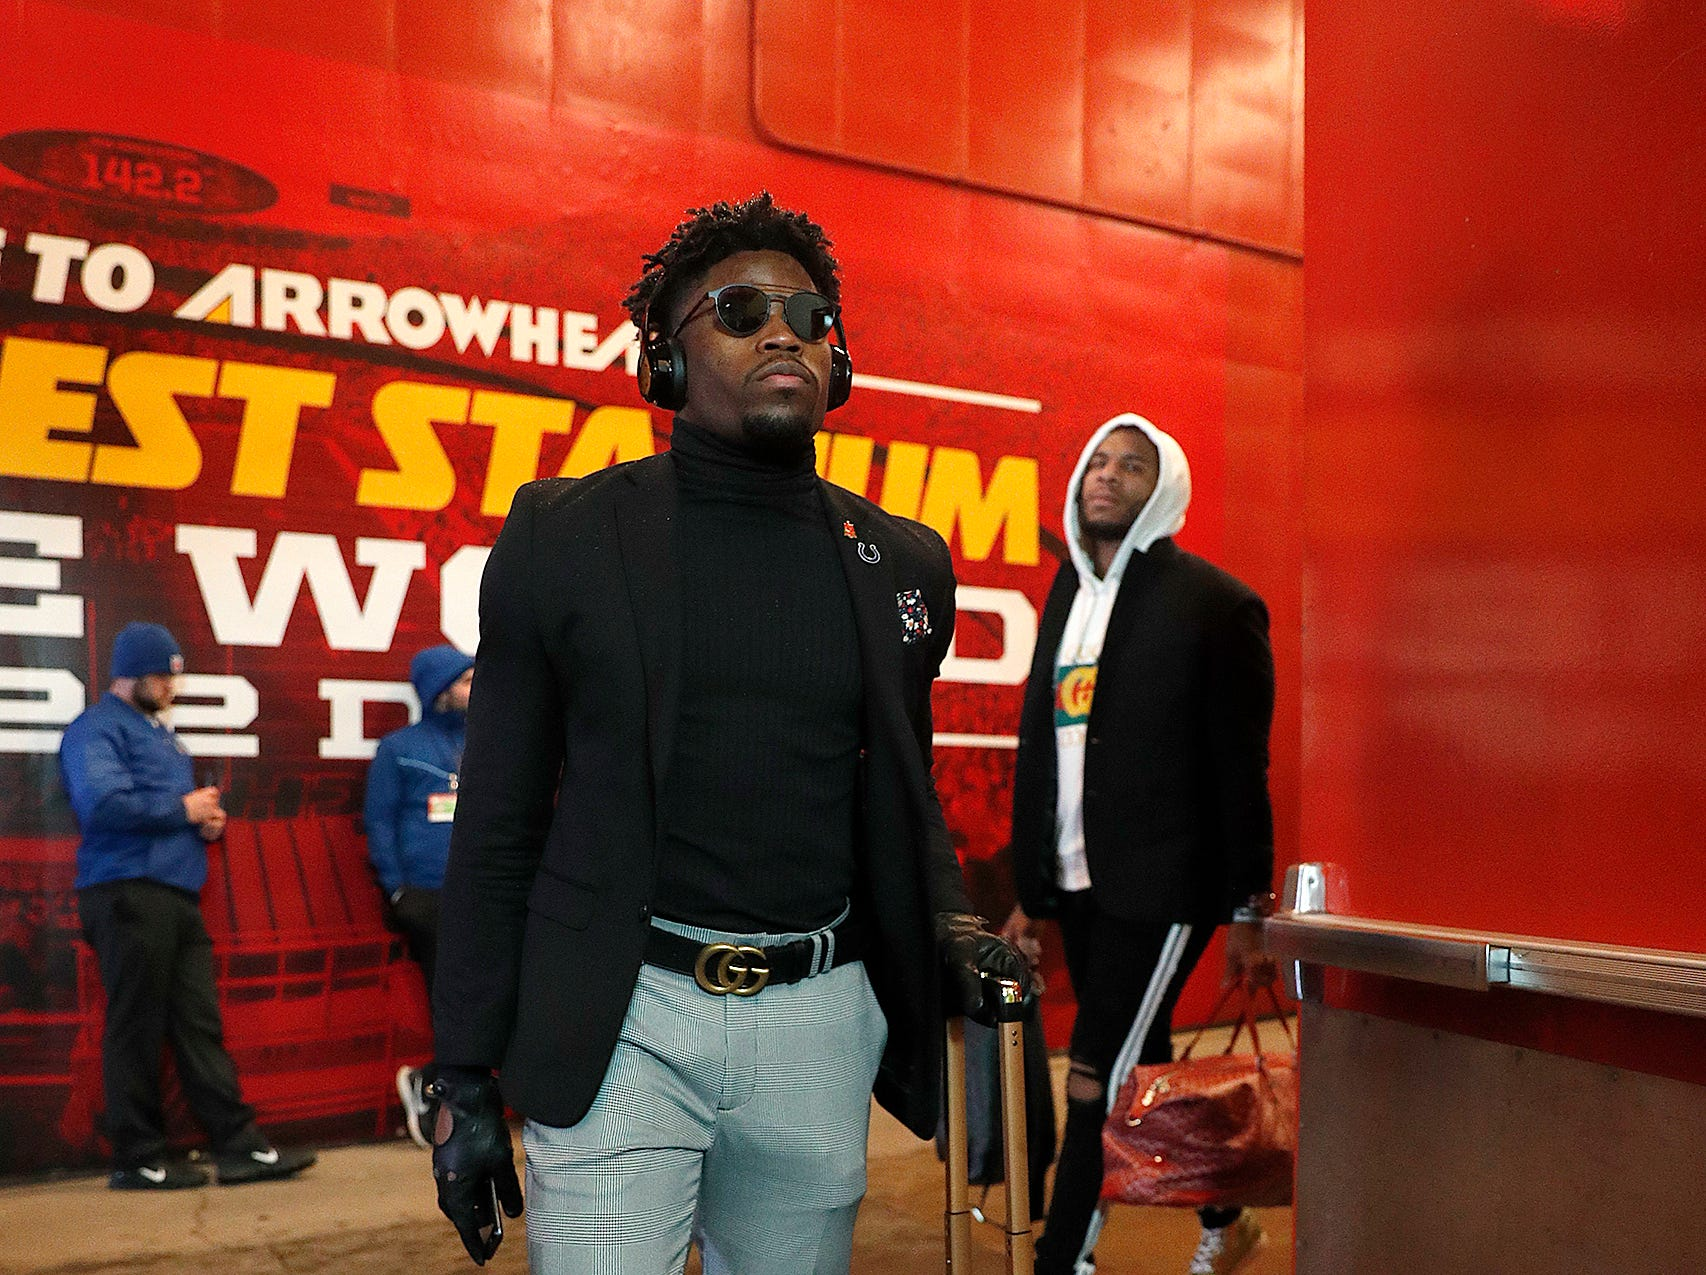 Indianapolis Colts cornerback Kenny Moore (23) and the Indianapolis Colts arrive for their game against the Kansas City Chiefs at Arrowhead Stadium in Kansas City, MO., on Saturday, Jan. 12, 2019.